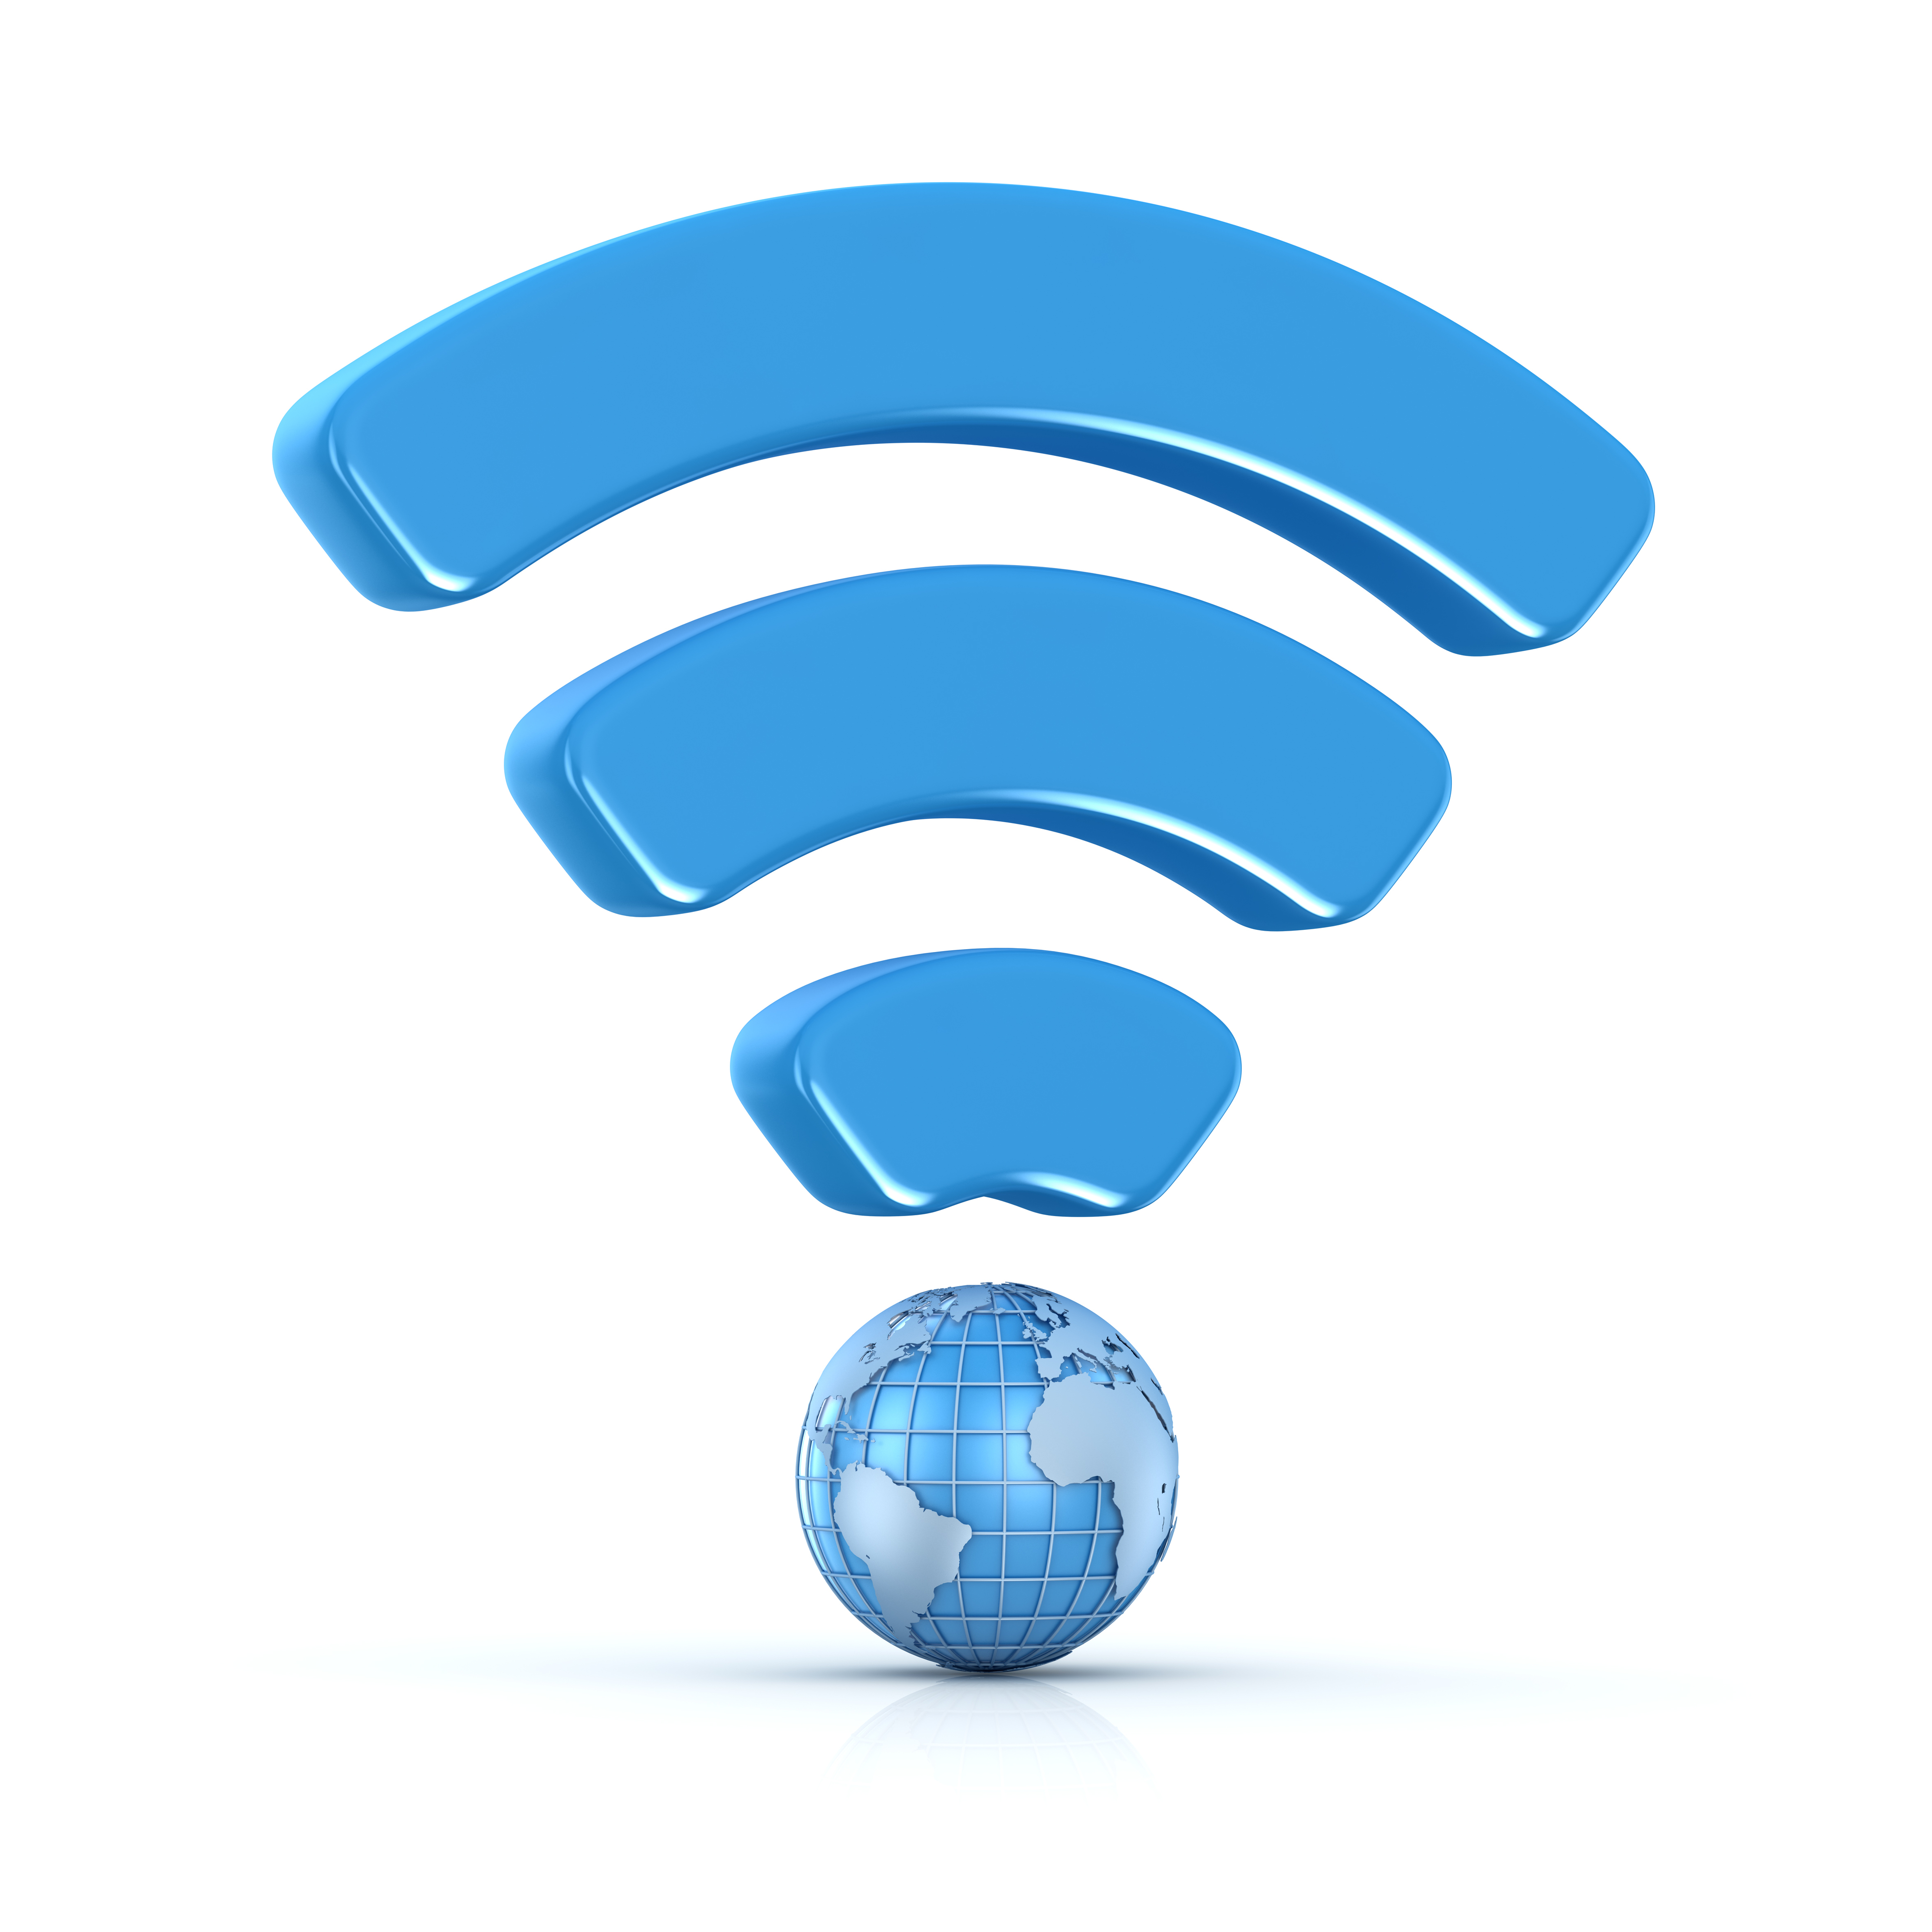 Wifi icon with world map , This is a computer generated and 3d rendered picture.